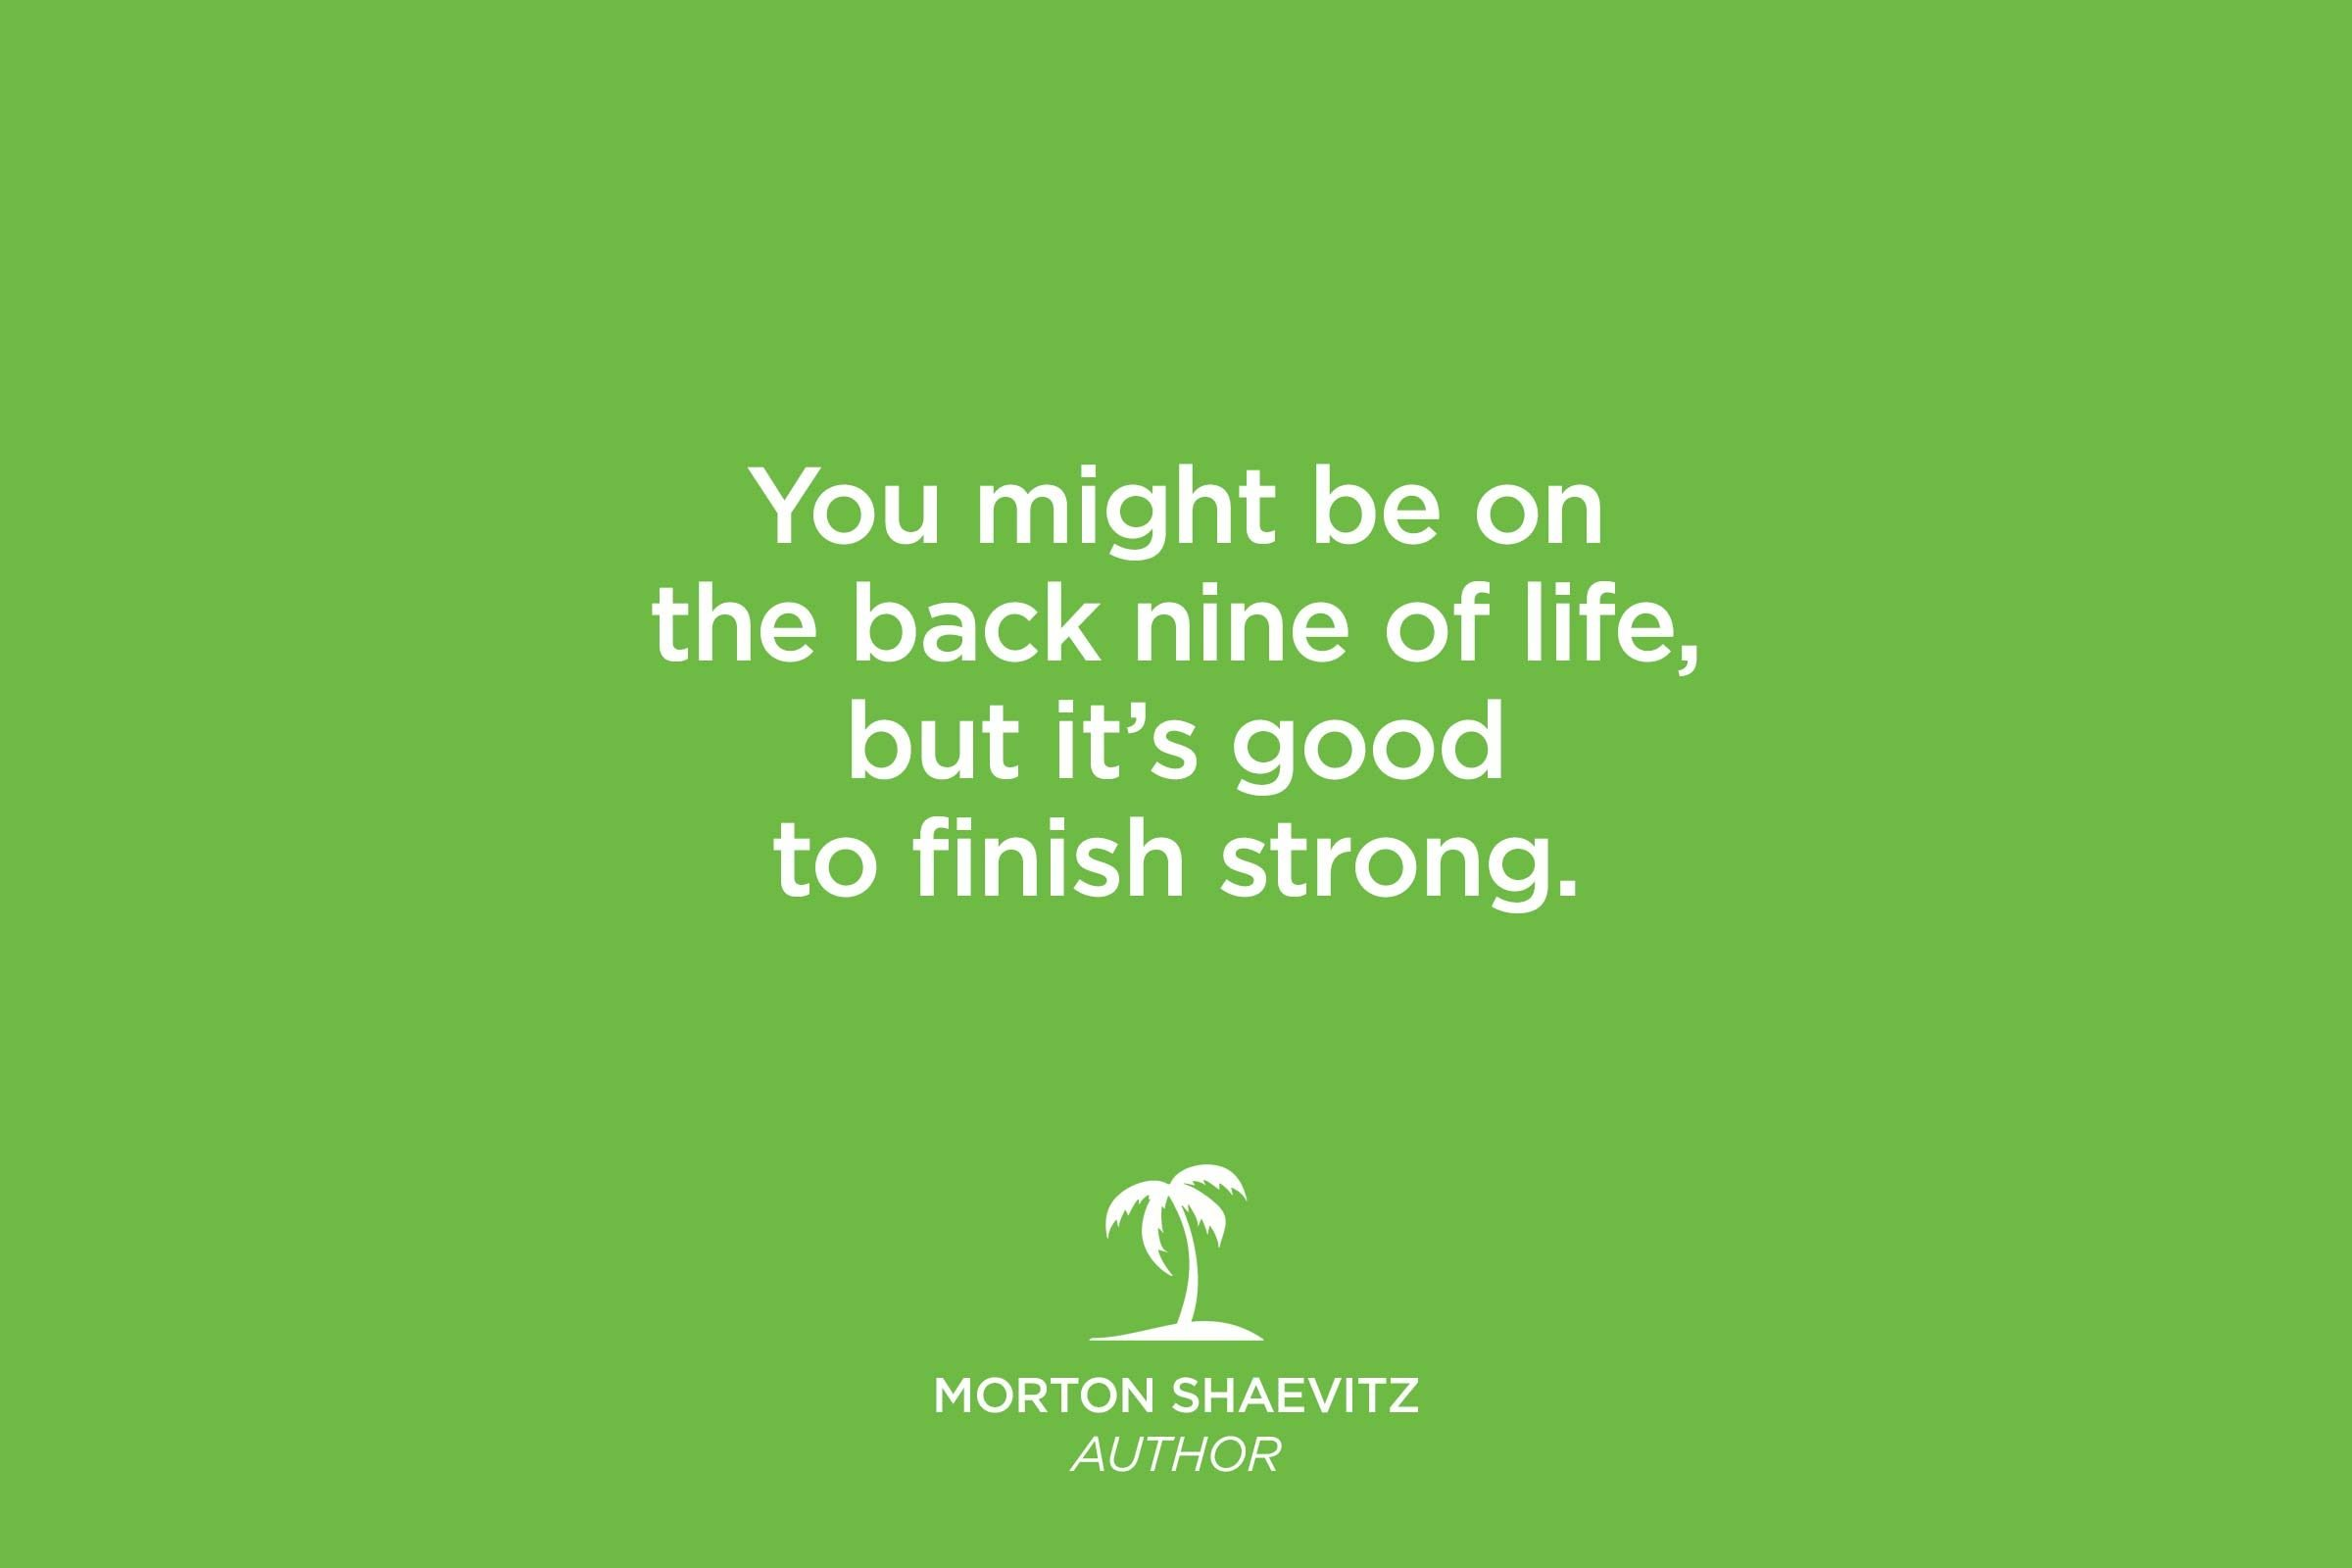 morton shaevitz quote